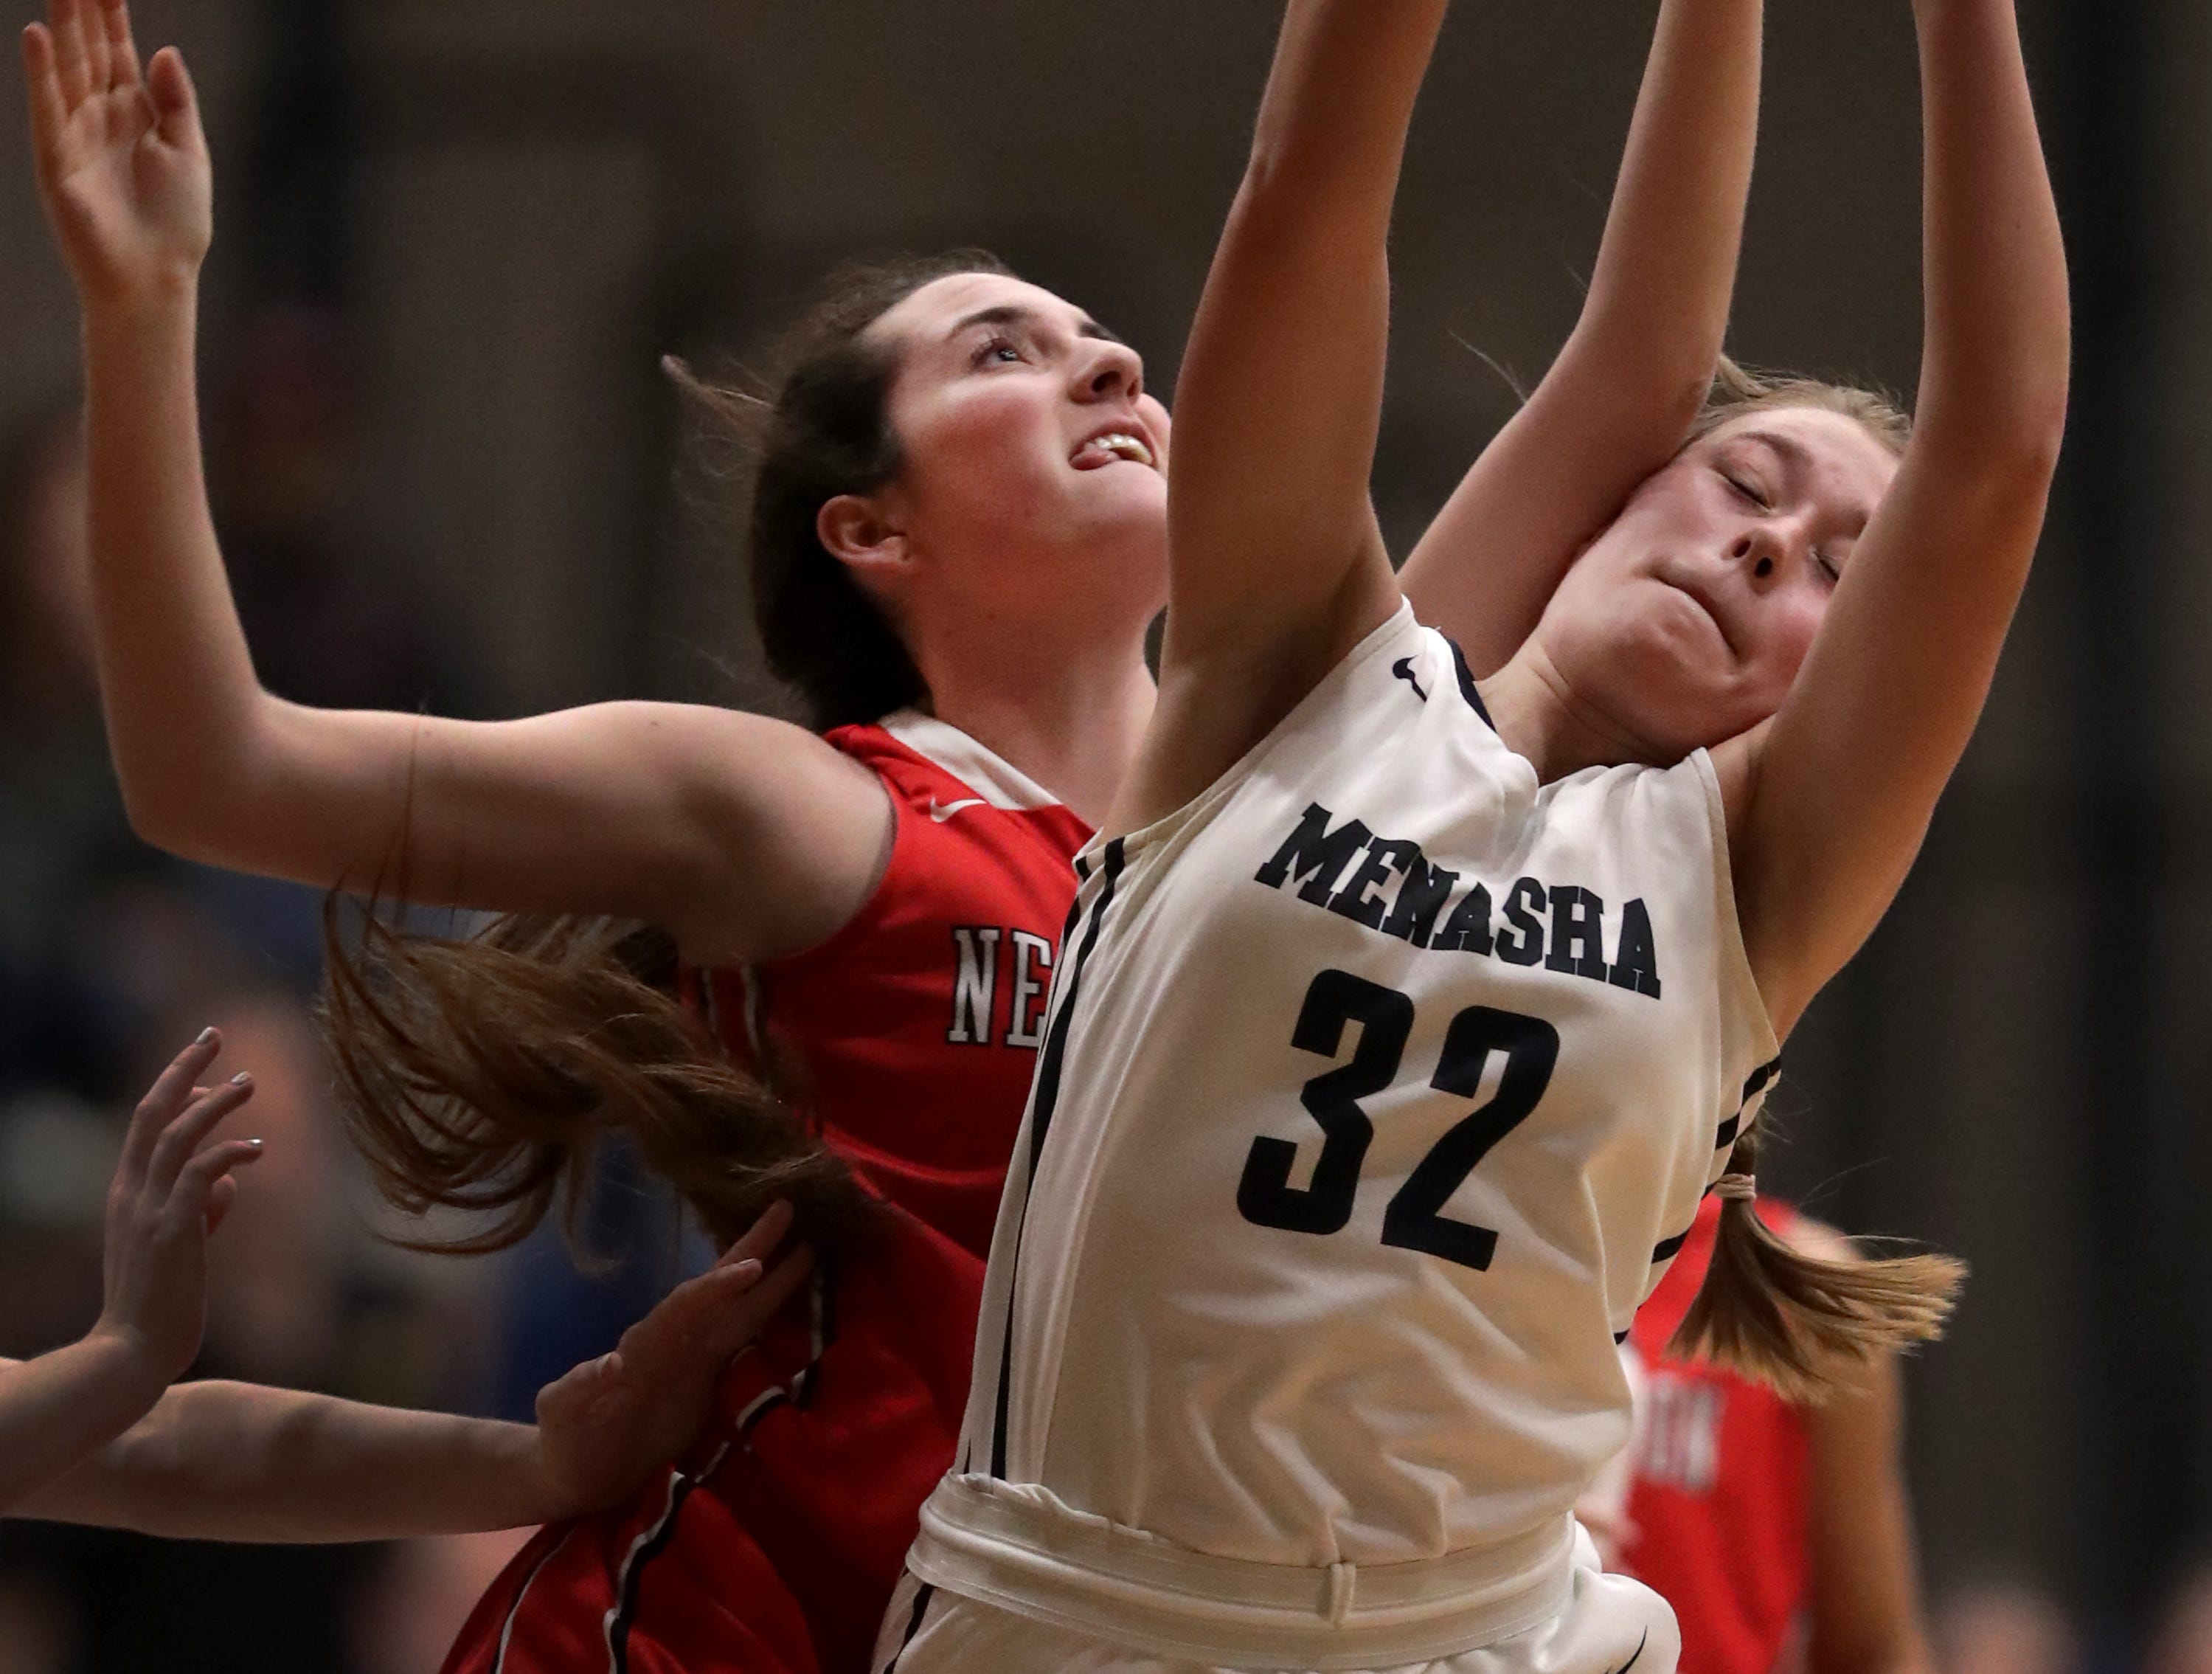 New London High School's #14 Meghan Besaw against Menasha High School's #32 Leah Johnson during their girls basketball game on Friday, December 14, 2018, in Menasha, Wis.